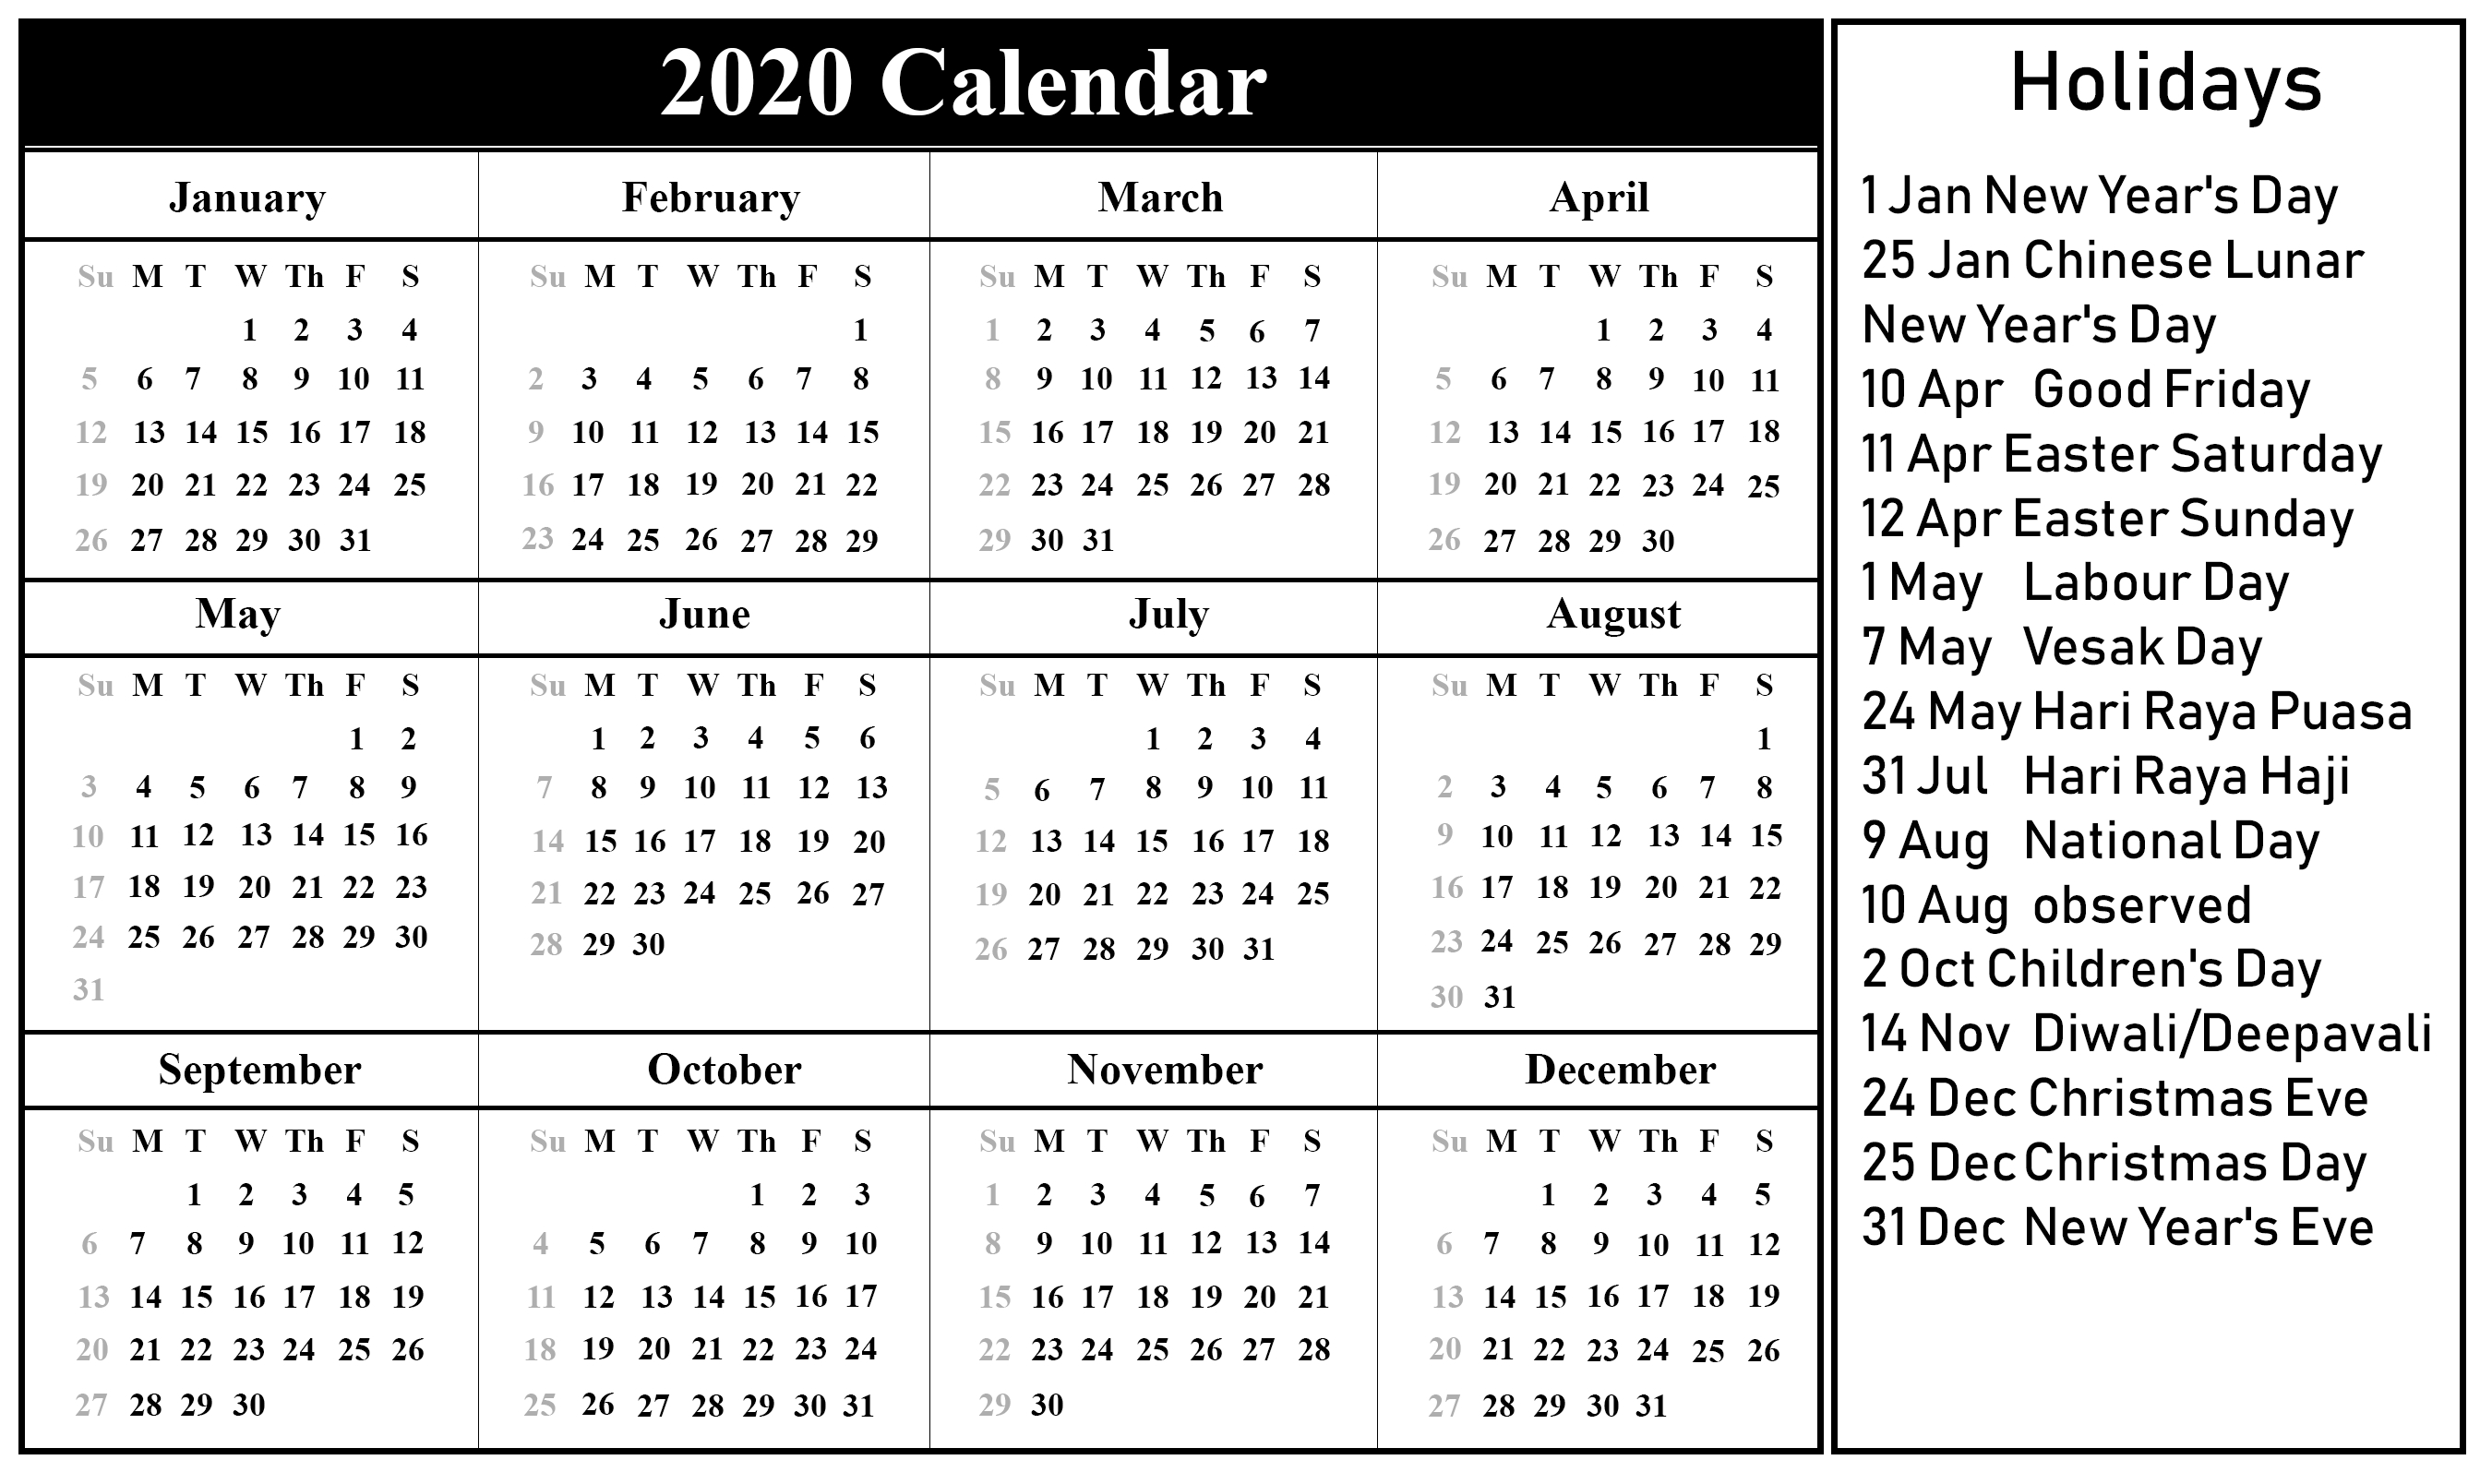 Printable 2020 Calendar With Holidays | Monthly Calendar for 2020 Calendar Printable Online